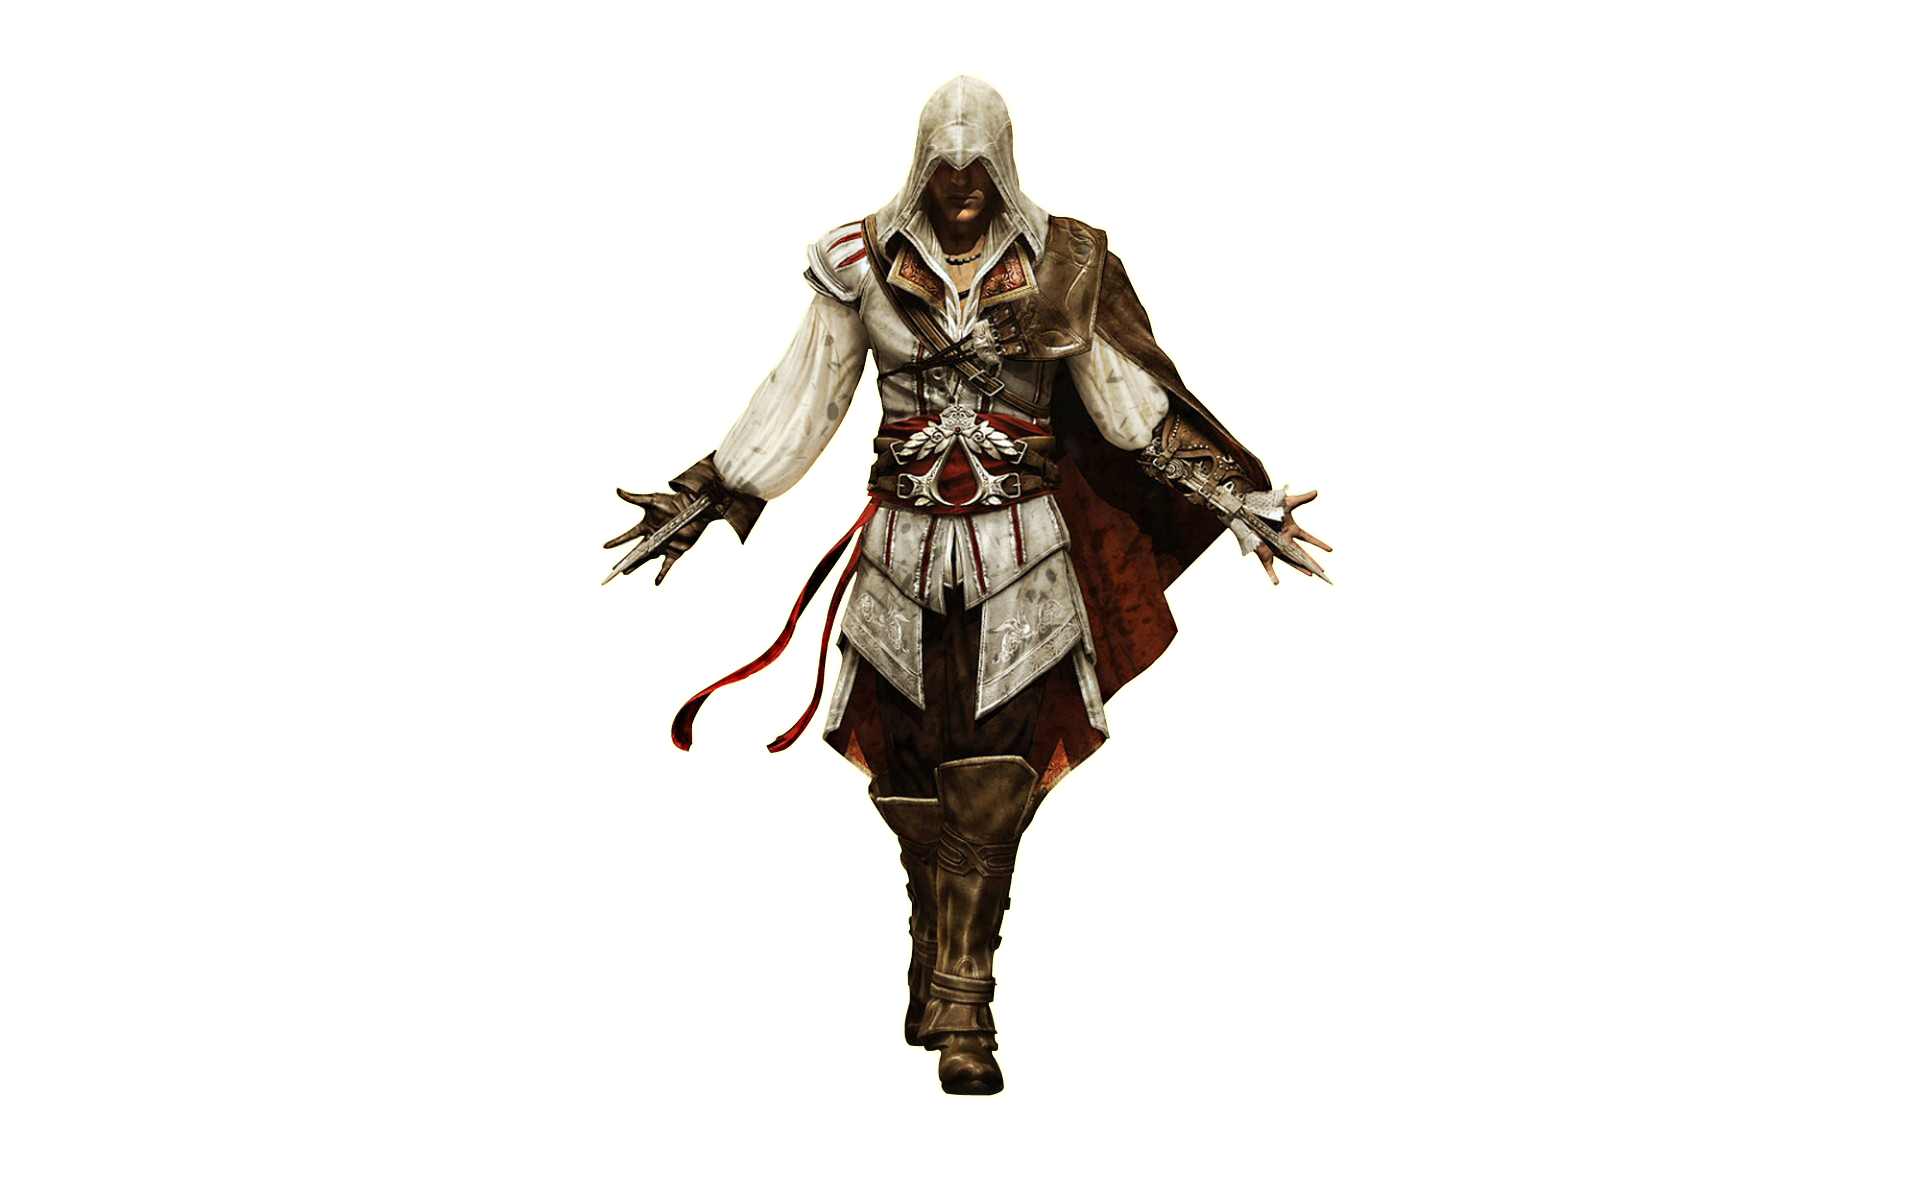 Ezio Auditore Transparent PNG Image